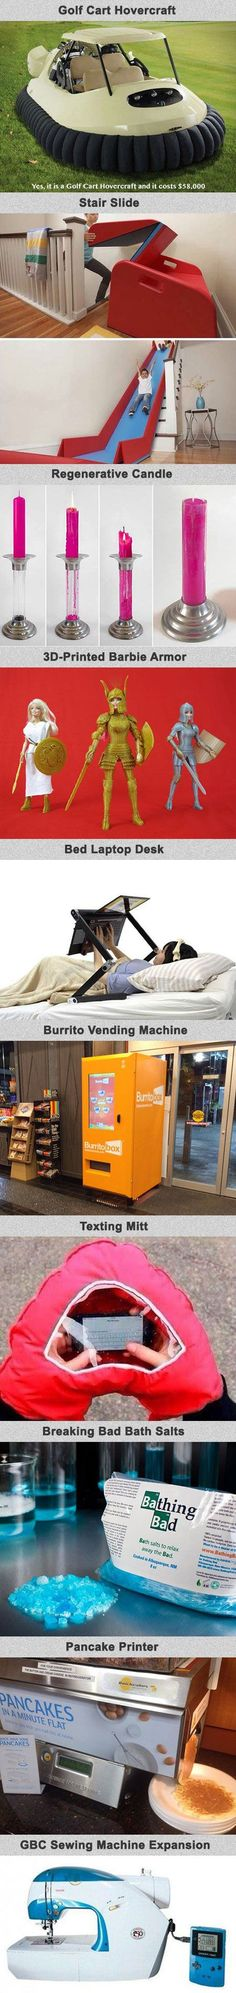 10 Bizarre Gadgets and Random Inventions You Won't Believe Exist d'autres gadgets ici : http://amzn.to/2kWxdPn